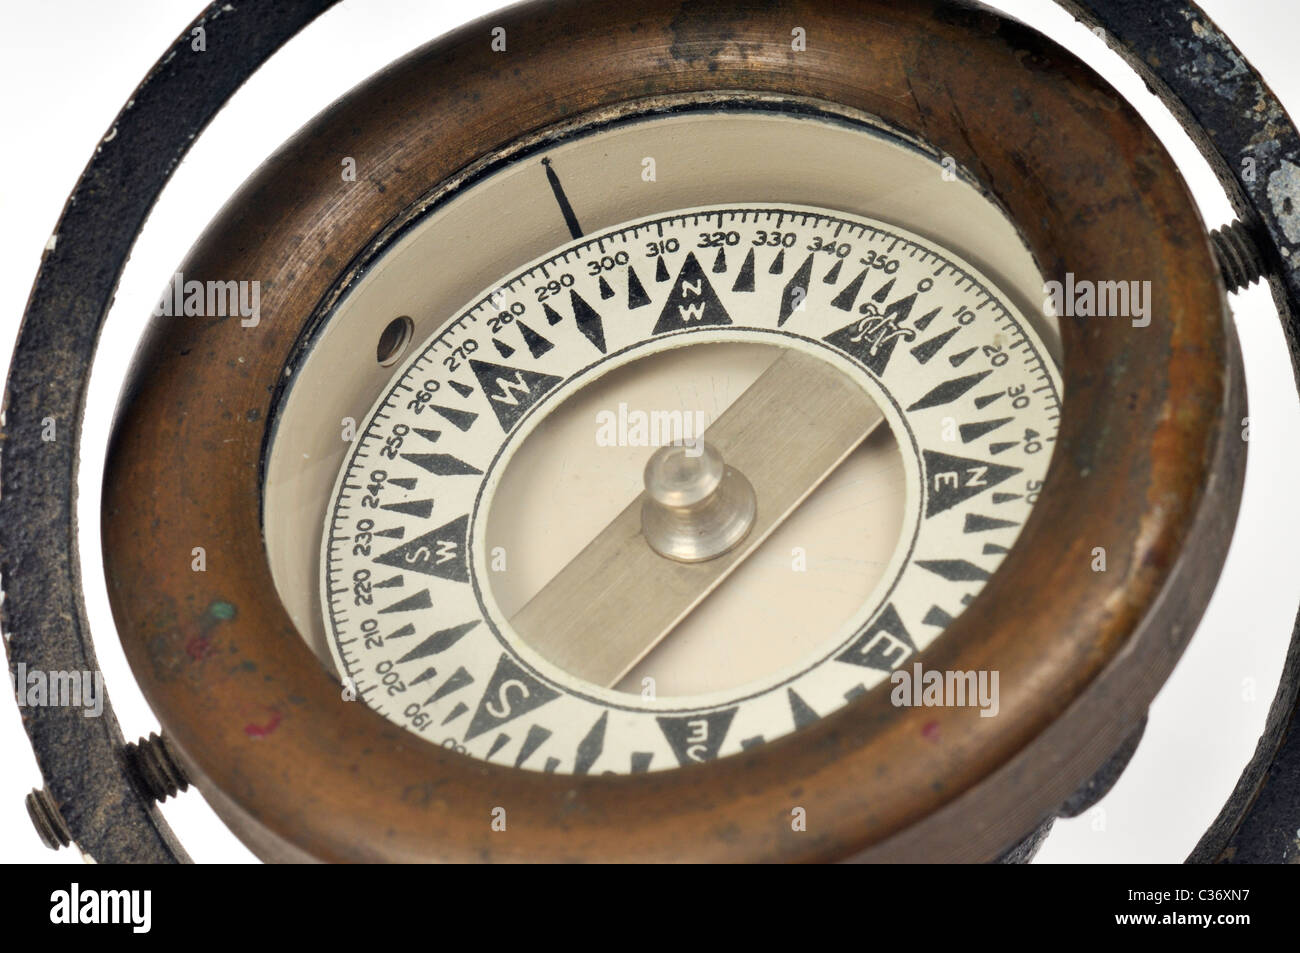 Close-up of face of an old brass navigation compass - Stock Image